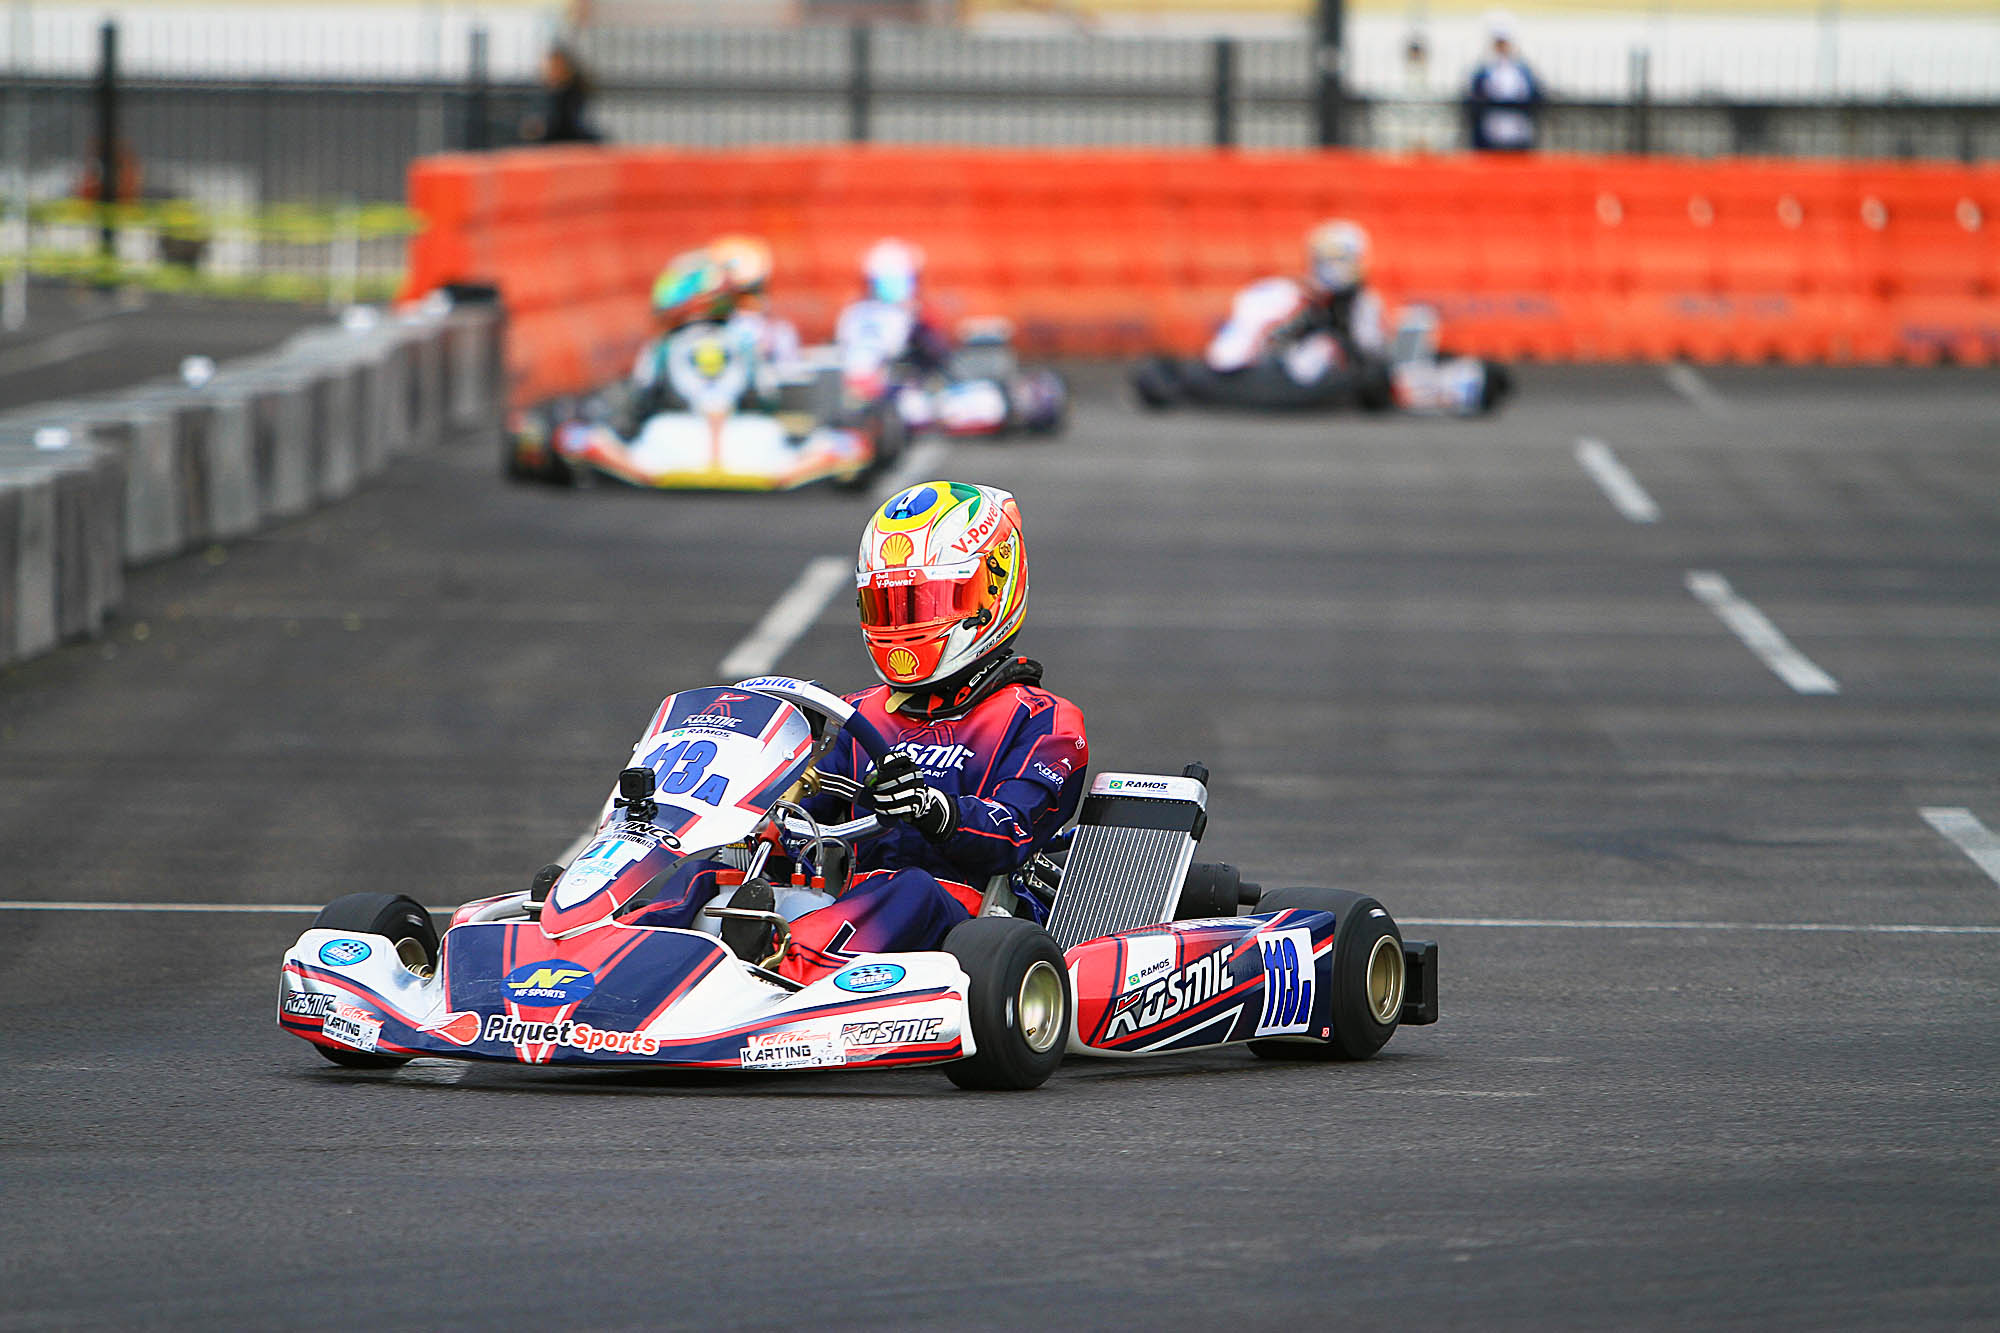 Photo of Kart – NF Piquet Sports abre temporada de 2018 com boa expectativa na Florida